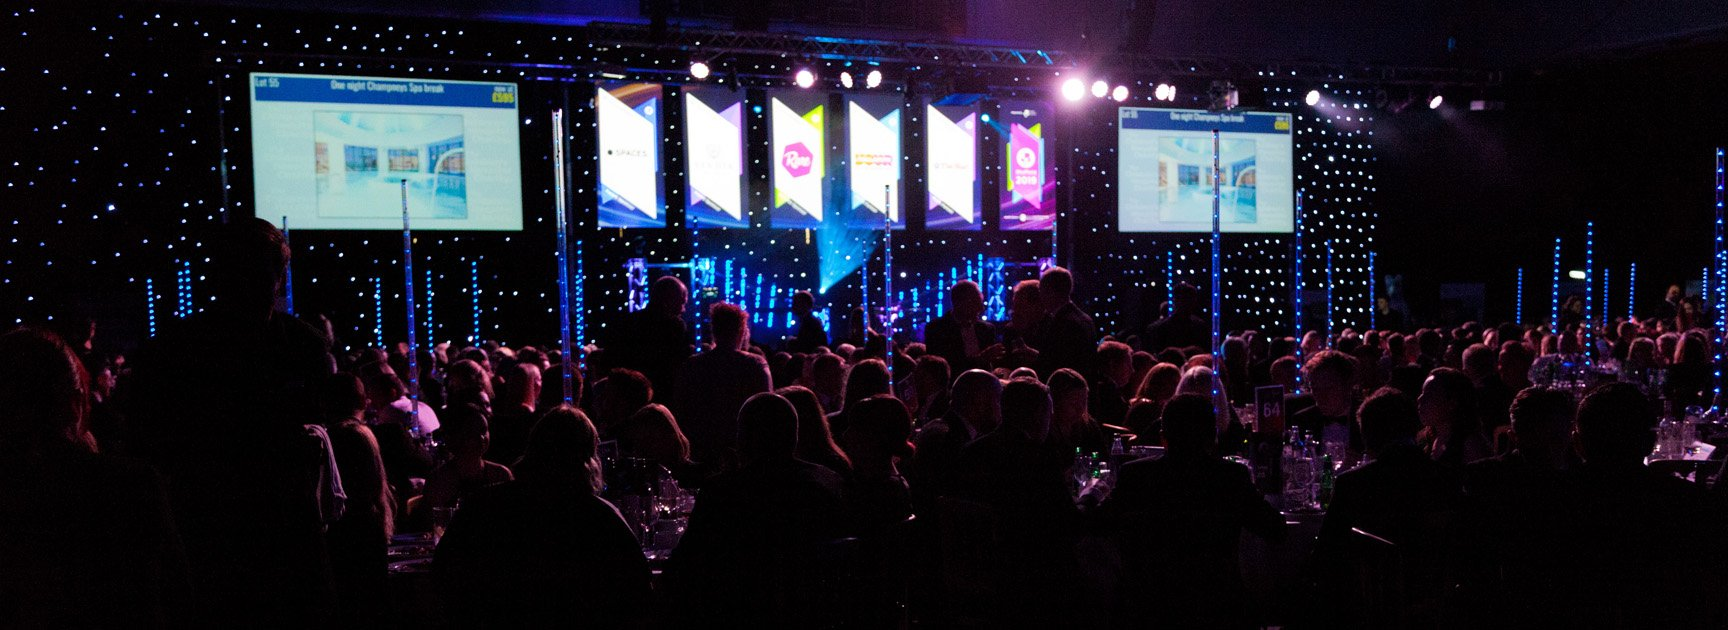 A photograph of Sheffield Business Awards 2019 by Antony Baker of Focussing On Photography